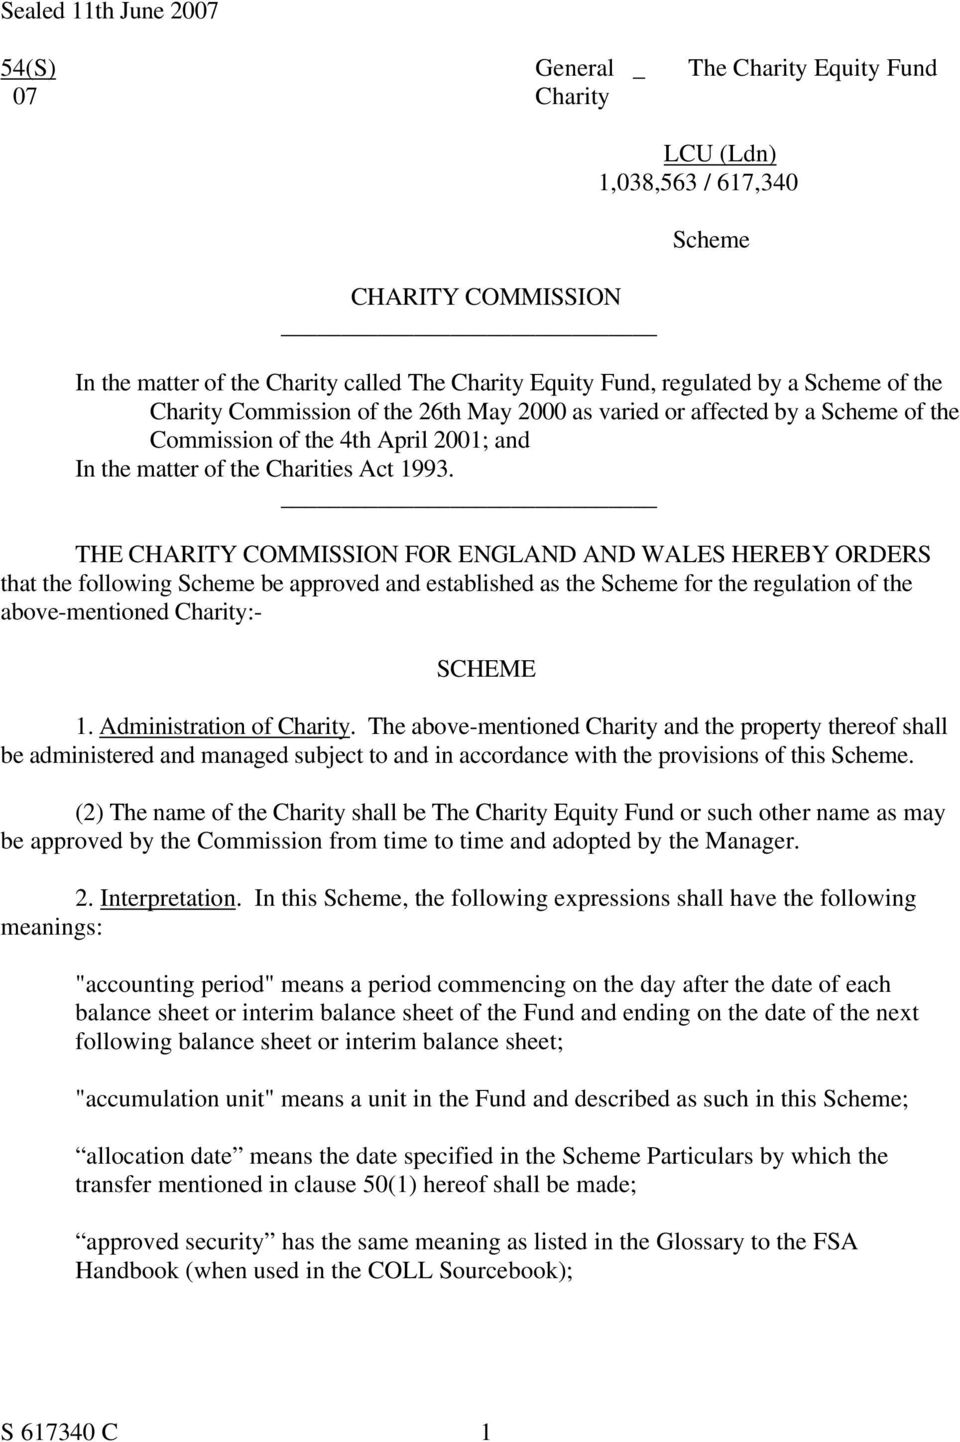 THE CHARITY COMMISSION FOR ENGLAND AND WALES HEREBY ORDERS that the following Scheme be approved and established as the Scheme for the regulation of the above-mentioned Charity:- SCHEME 1.